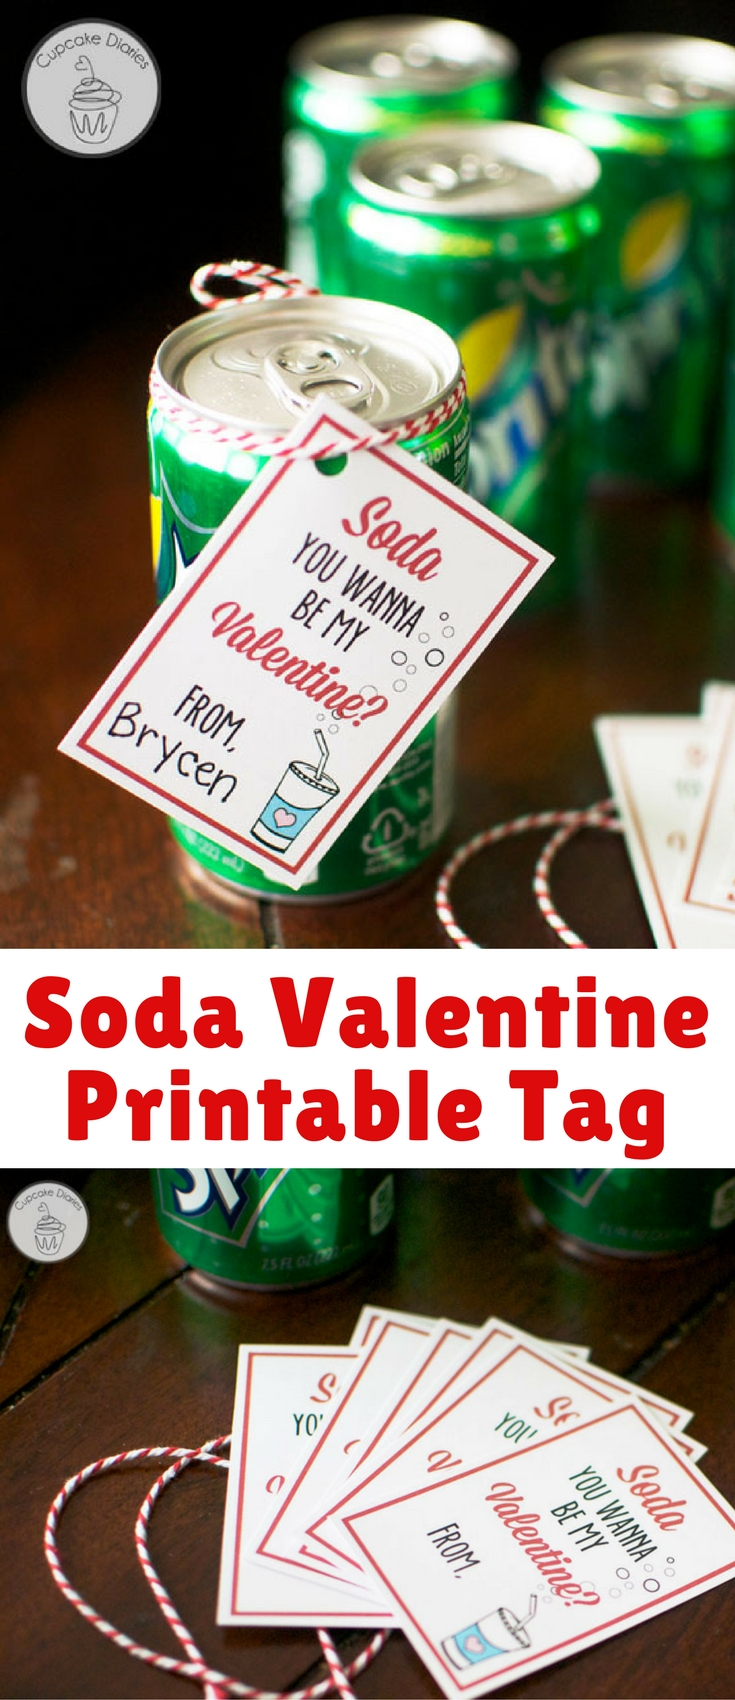 My four-year-old son is in preschool and getting really excited for Valentine's Day. I gave him a couple of options for valentines and he chose this idea. This is a fun one and super easy!